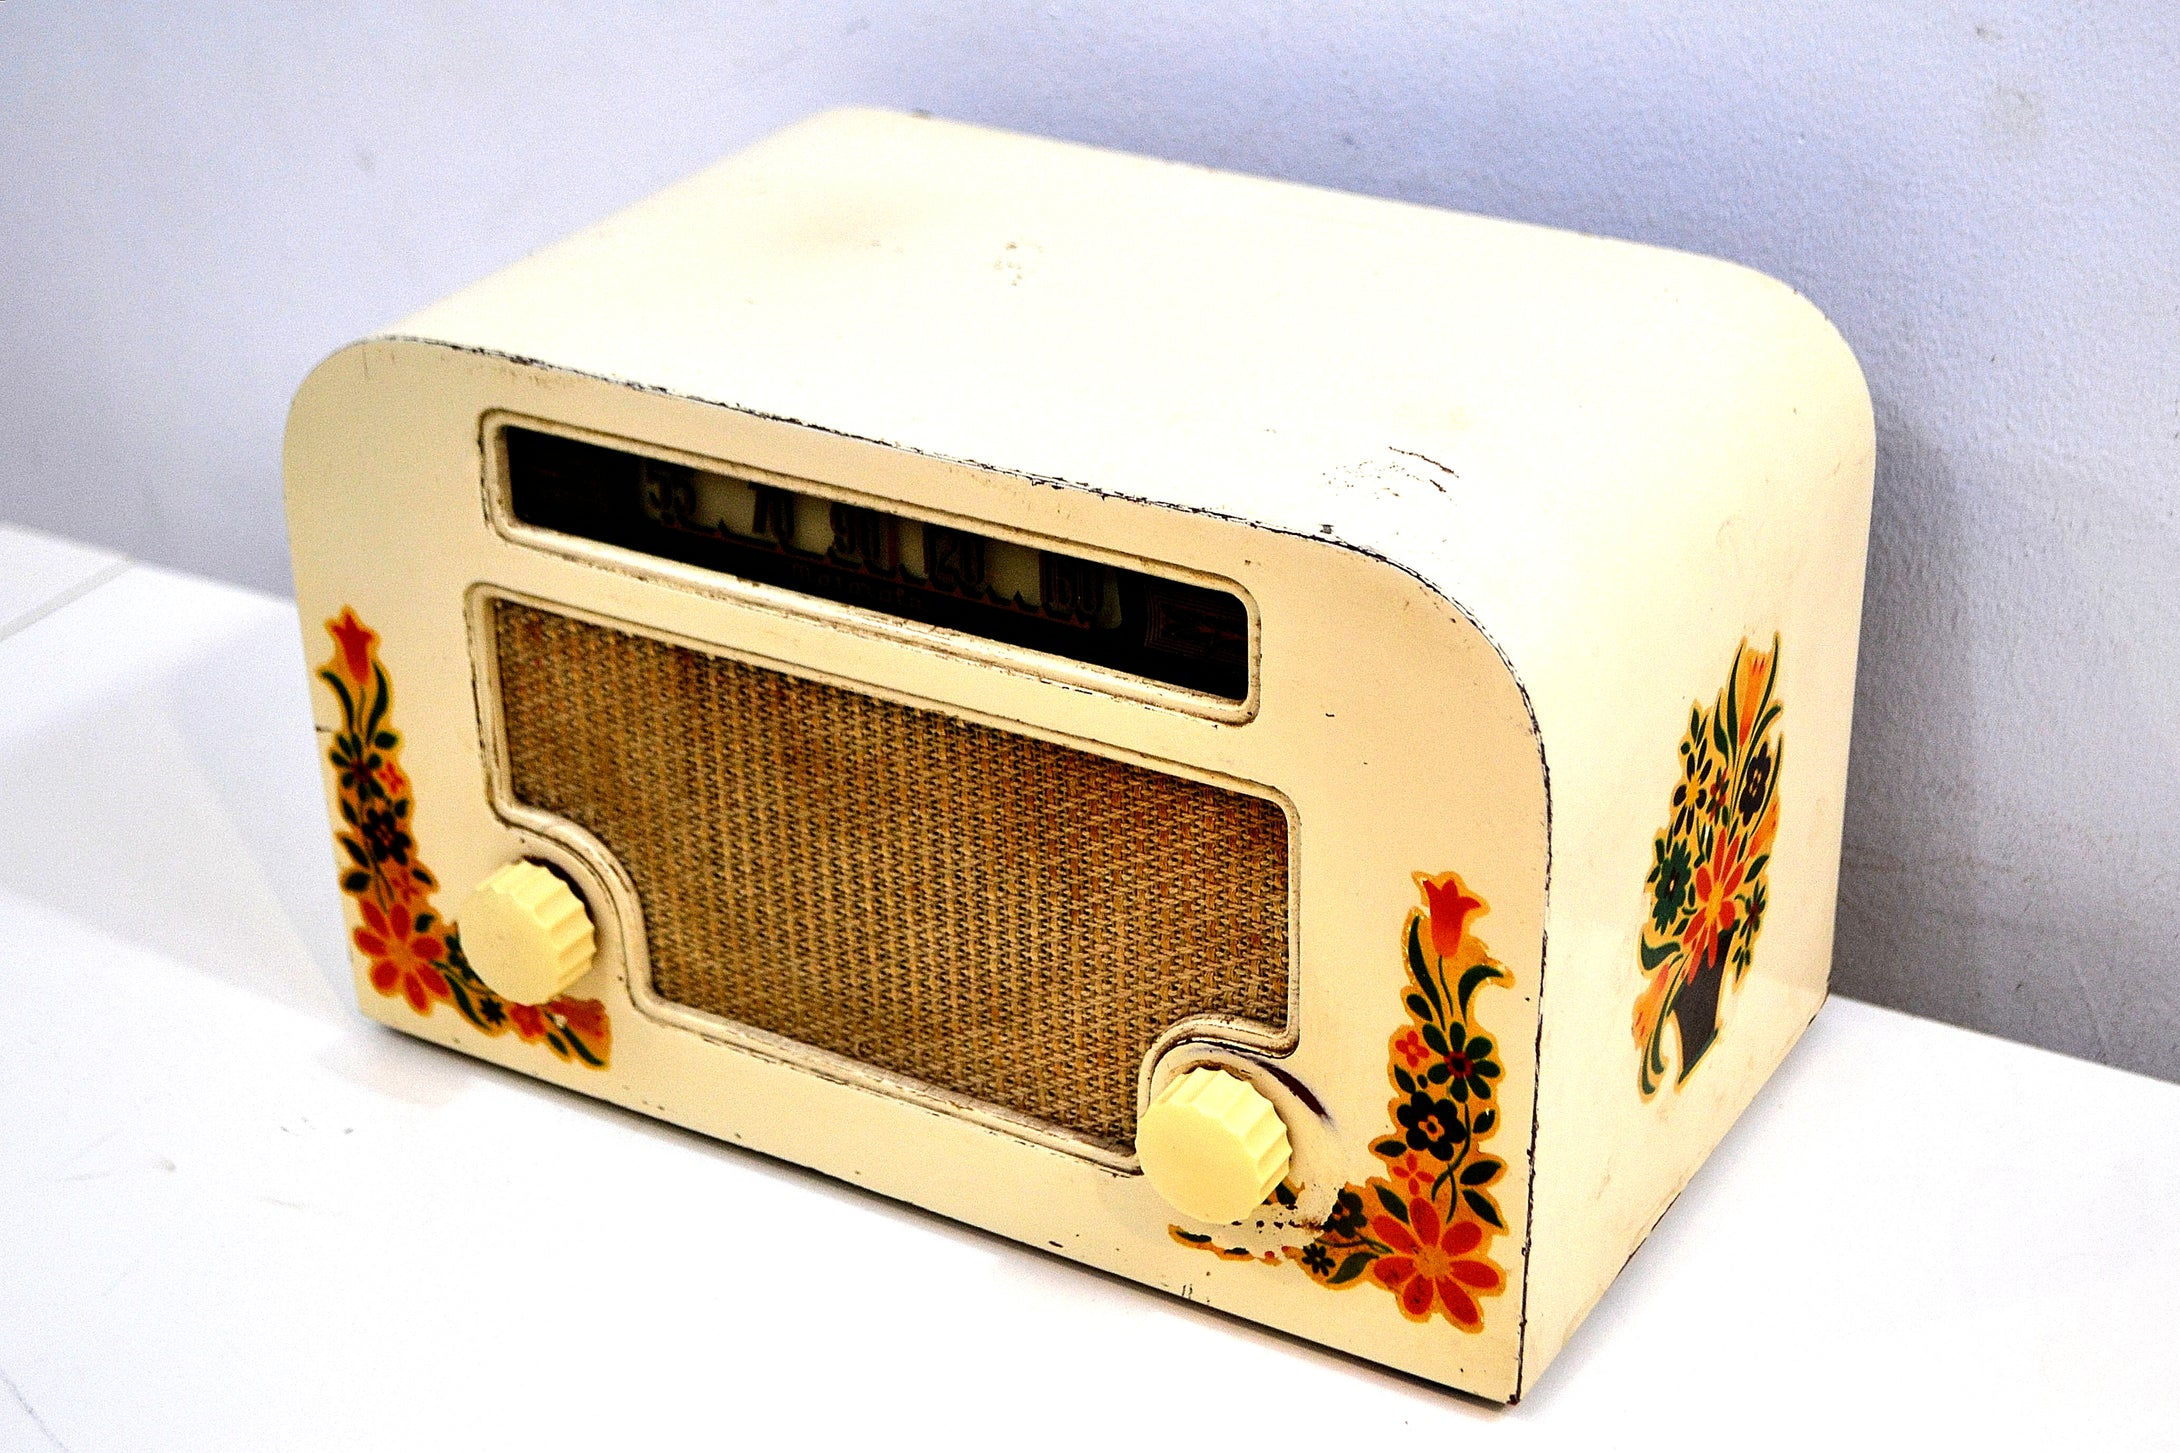 Country Cottage Ivory 1940 Motorola 55x15 Tube AM Radio Original Factory Quaint Design! - [product_type} - Motorola - Retro Radio Farm